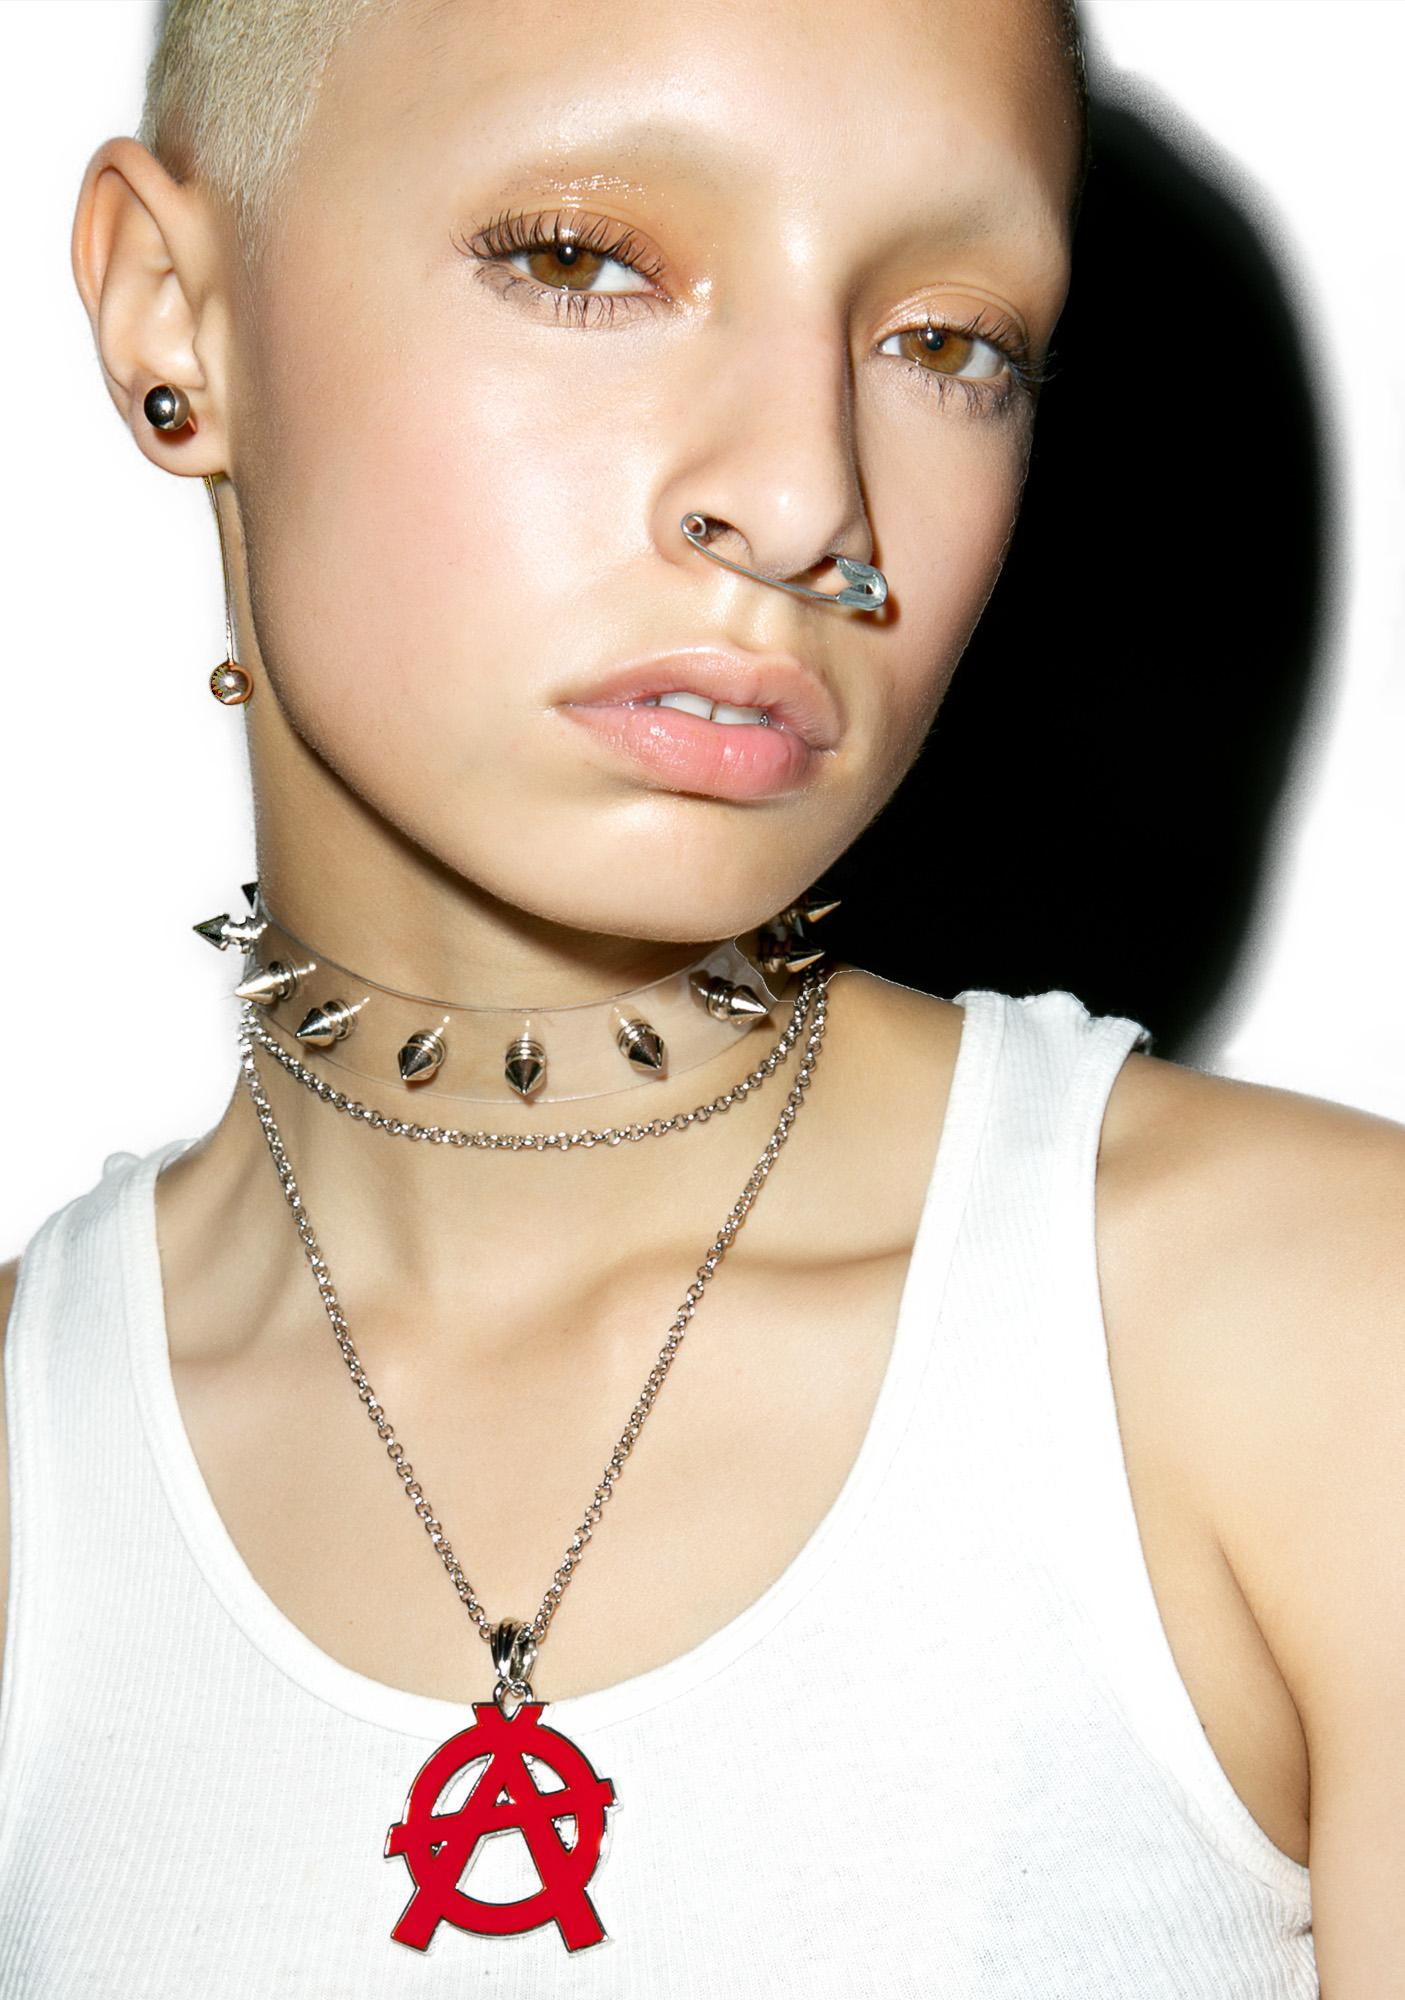 Clearly Spiked Choker